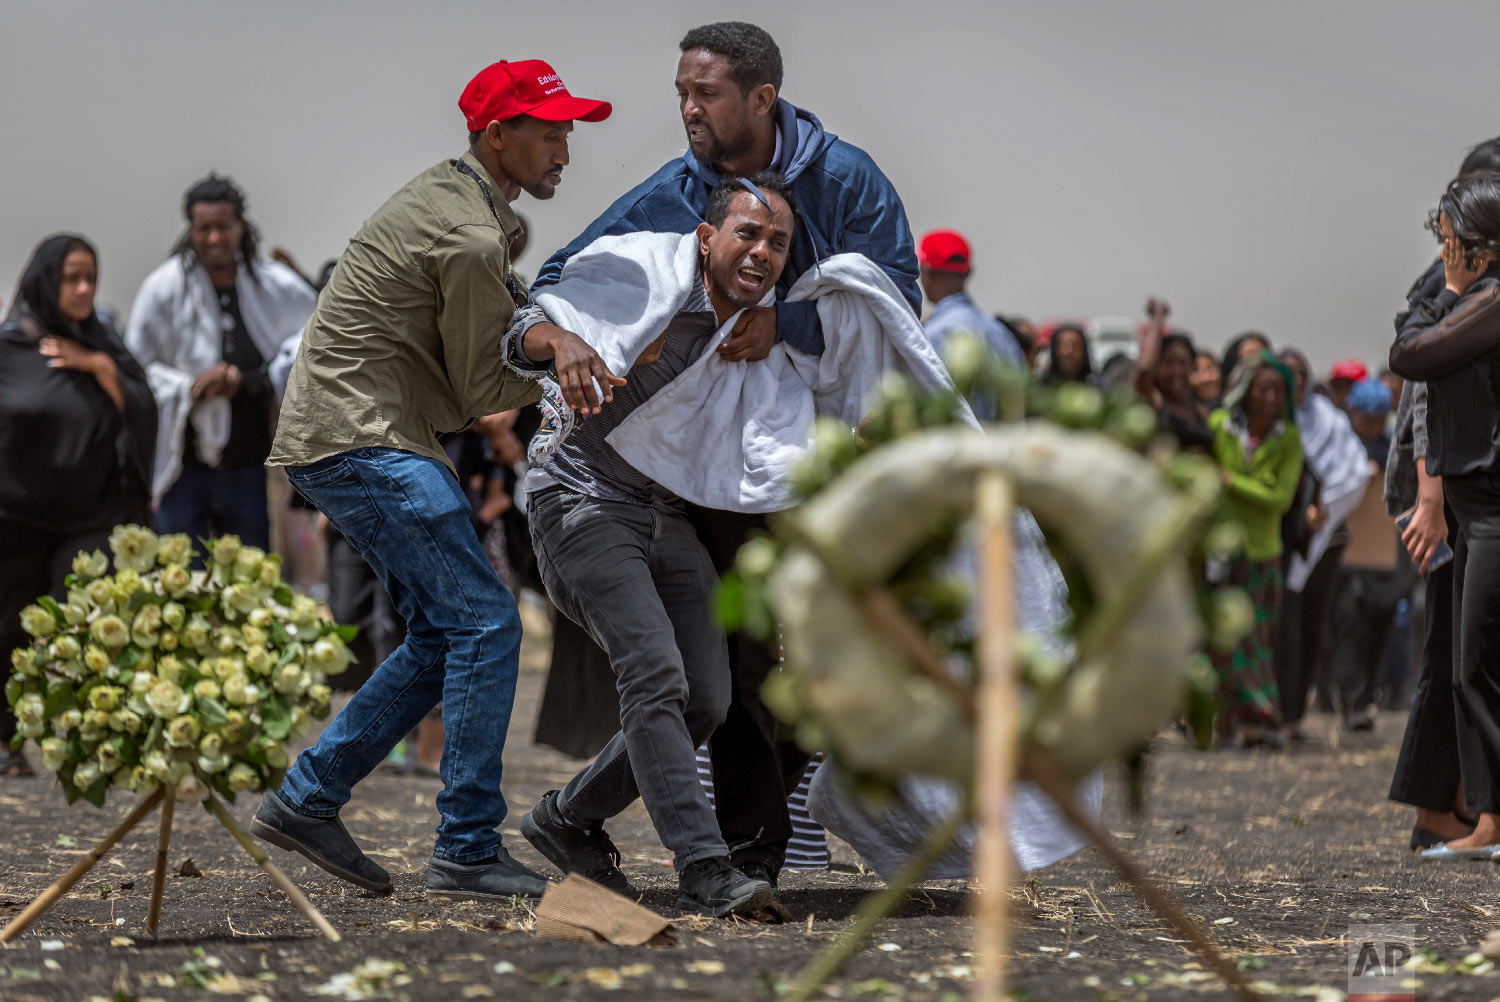 Ethiopian relatives of crash victims mourn and grieve at the scene where the Ethiopian Airlines Boeing 737 Max 8 crashed shortly after takeoff on Sunday near Bishoftu, Ethiopia on March 14, 2019. (AP Photo/Mulugeta Ayene)